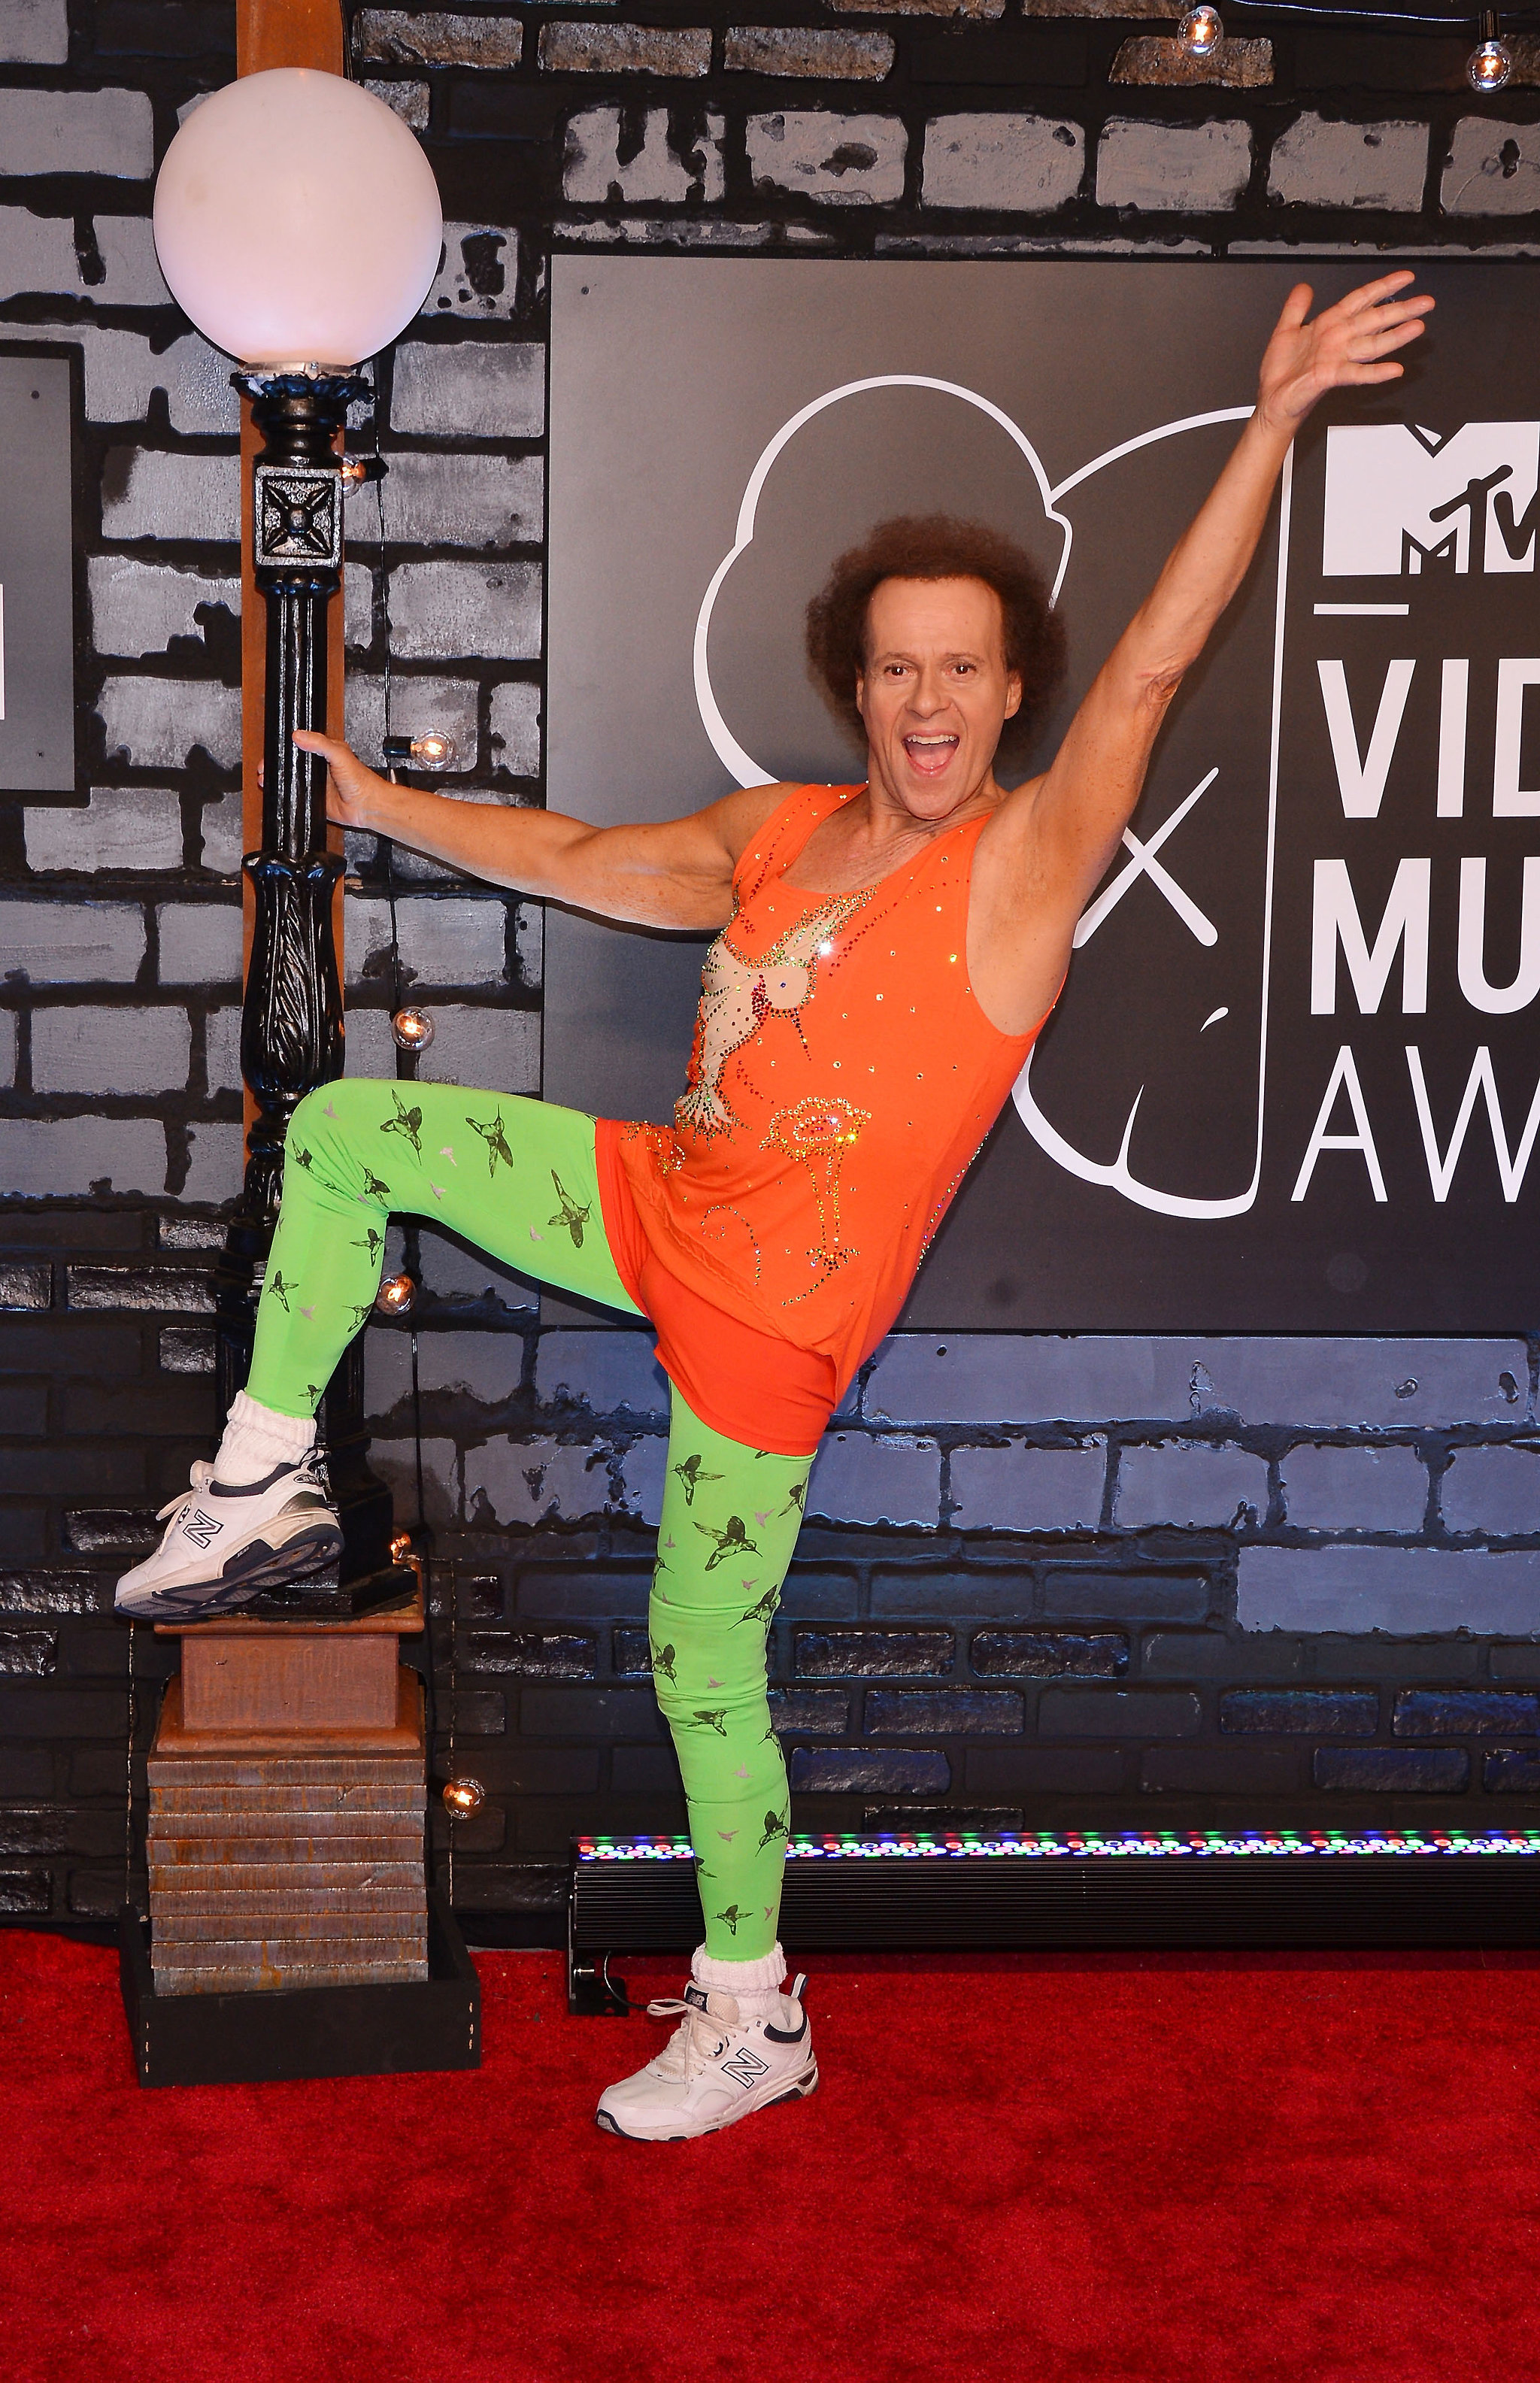 Richard Simmons's Explanation For His 2-Year Disappearance Makes Perfect Sense